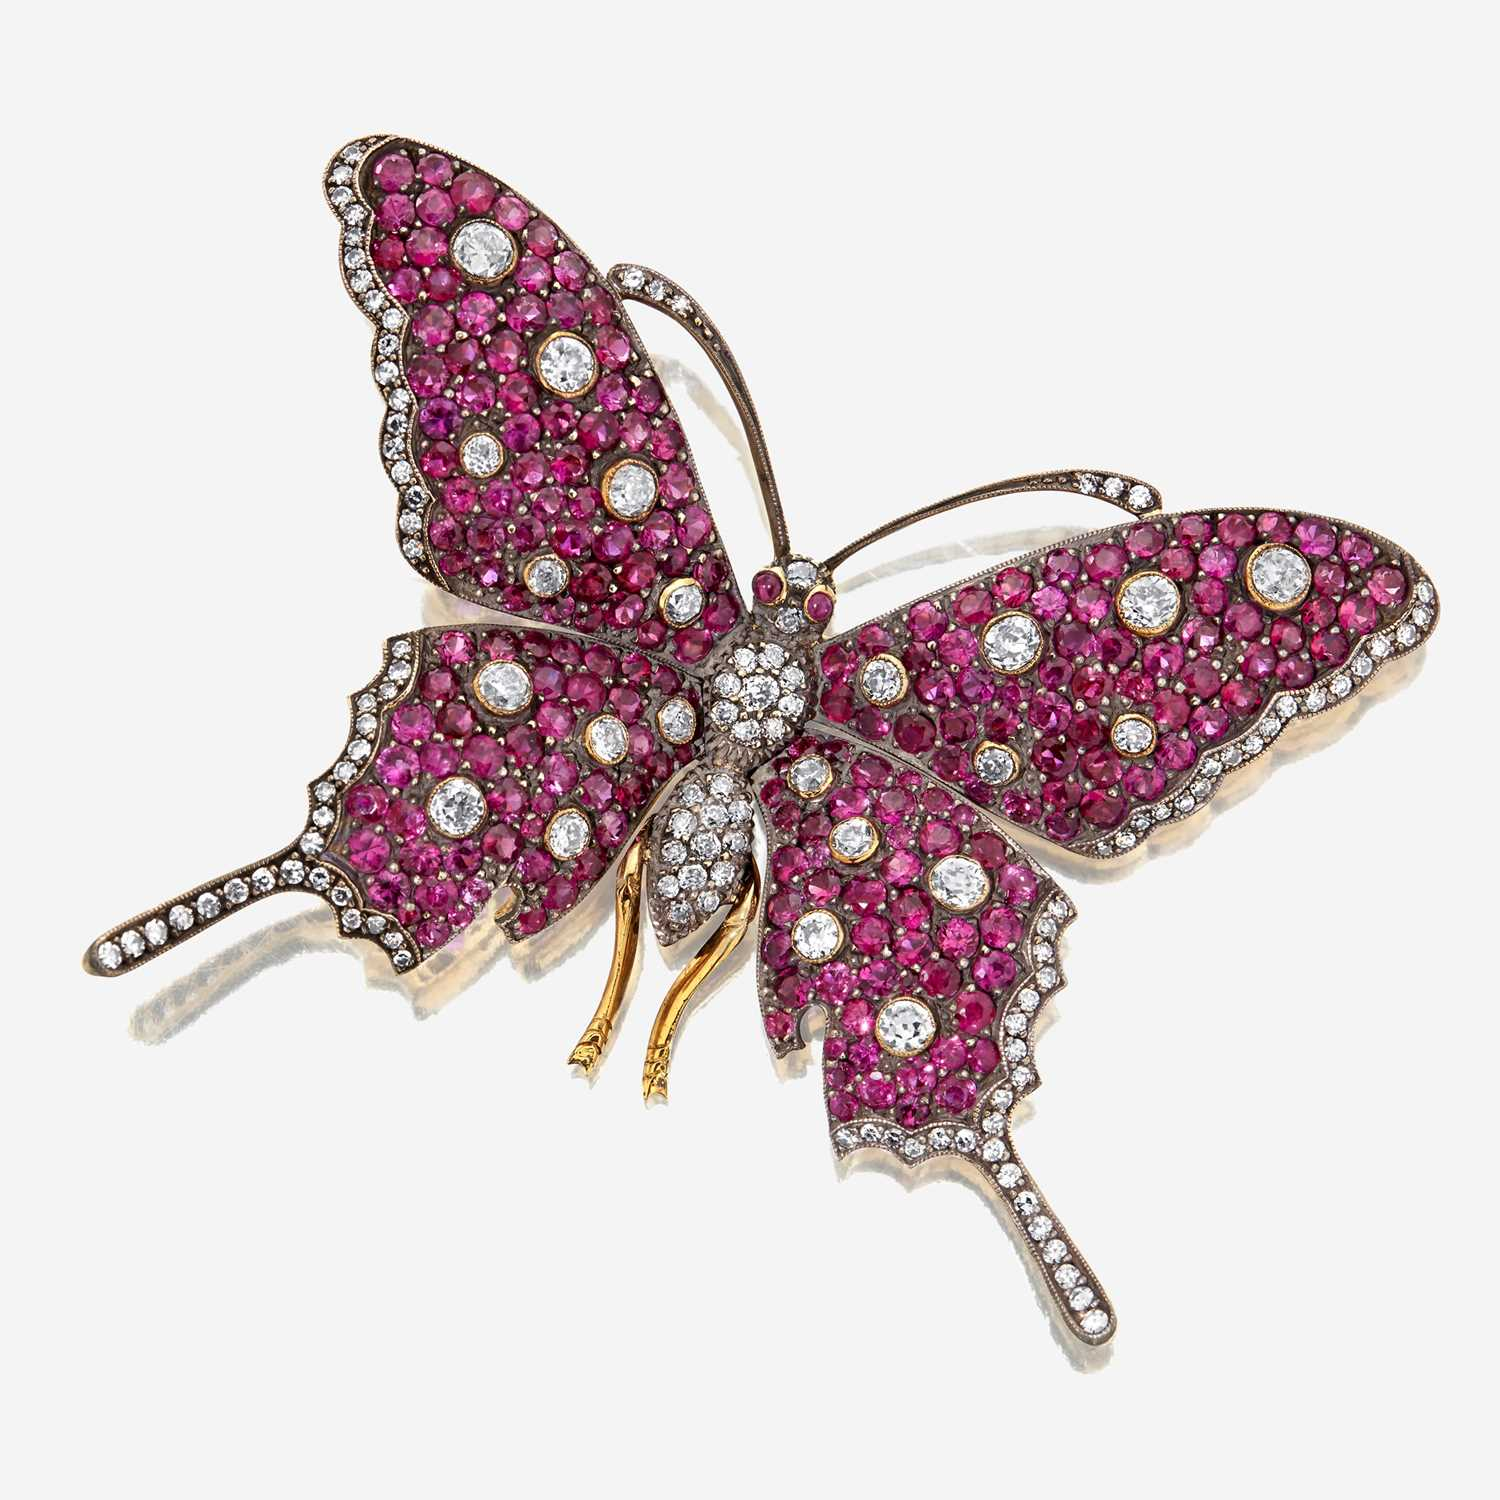 Lot 15 - A diamond and ruby brooch